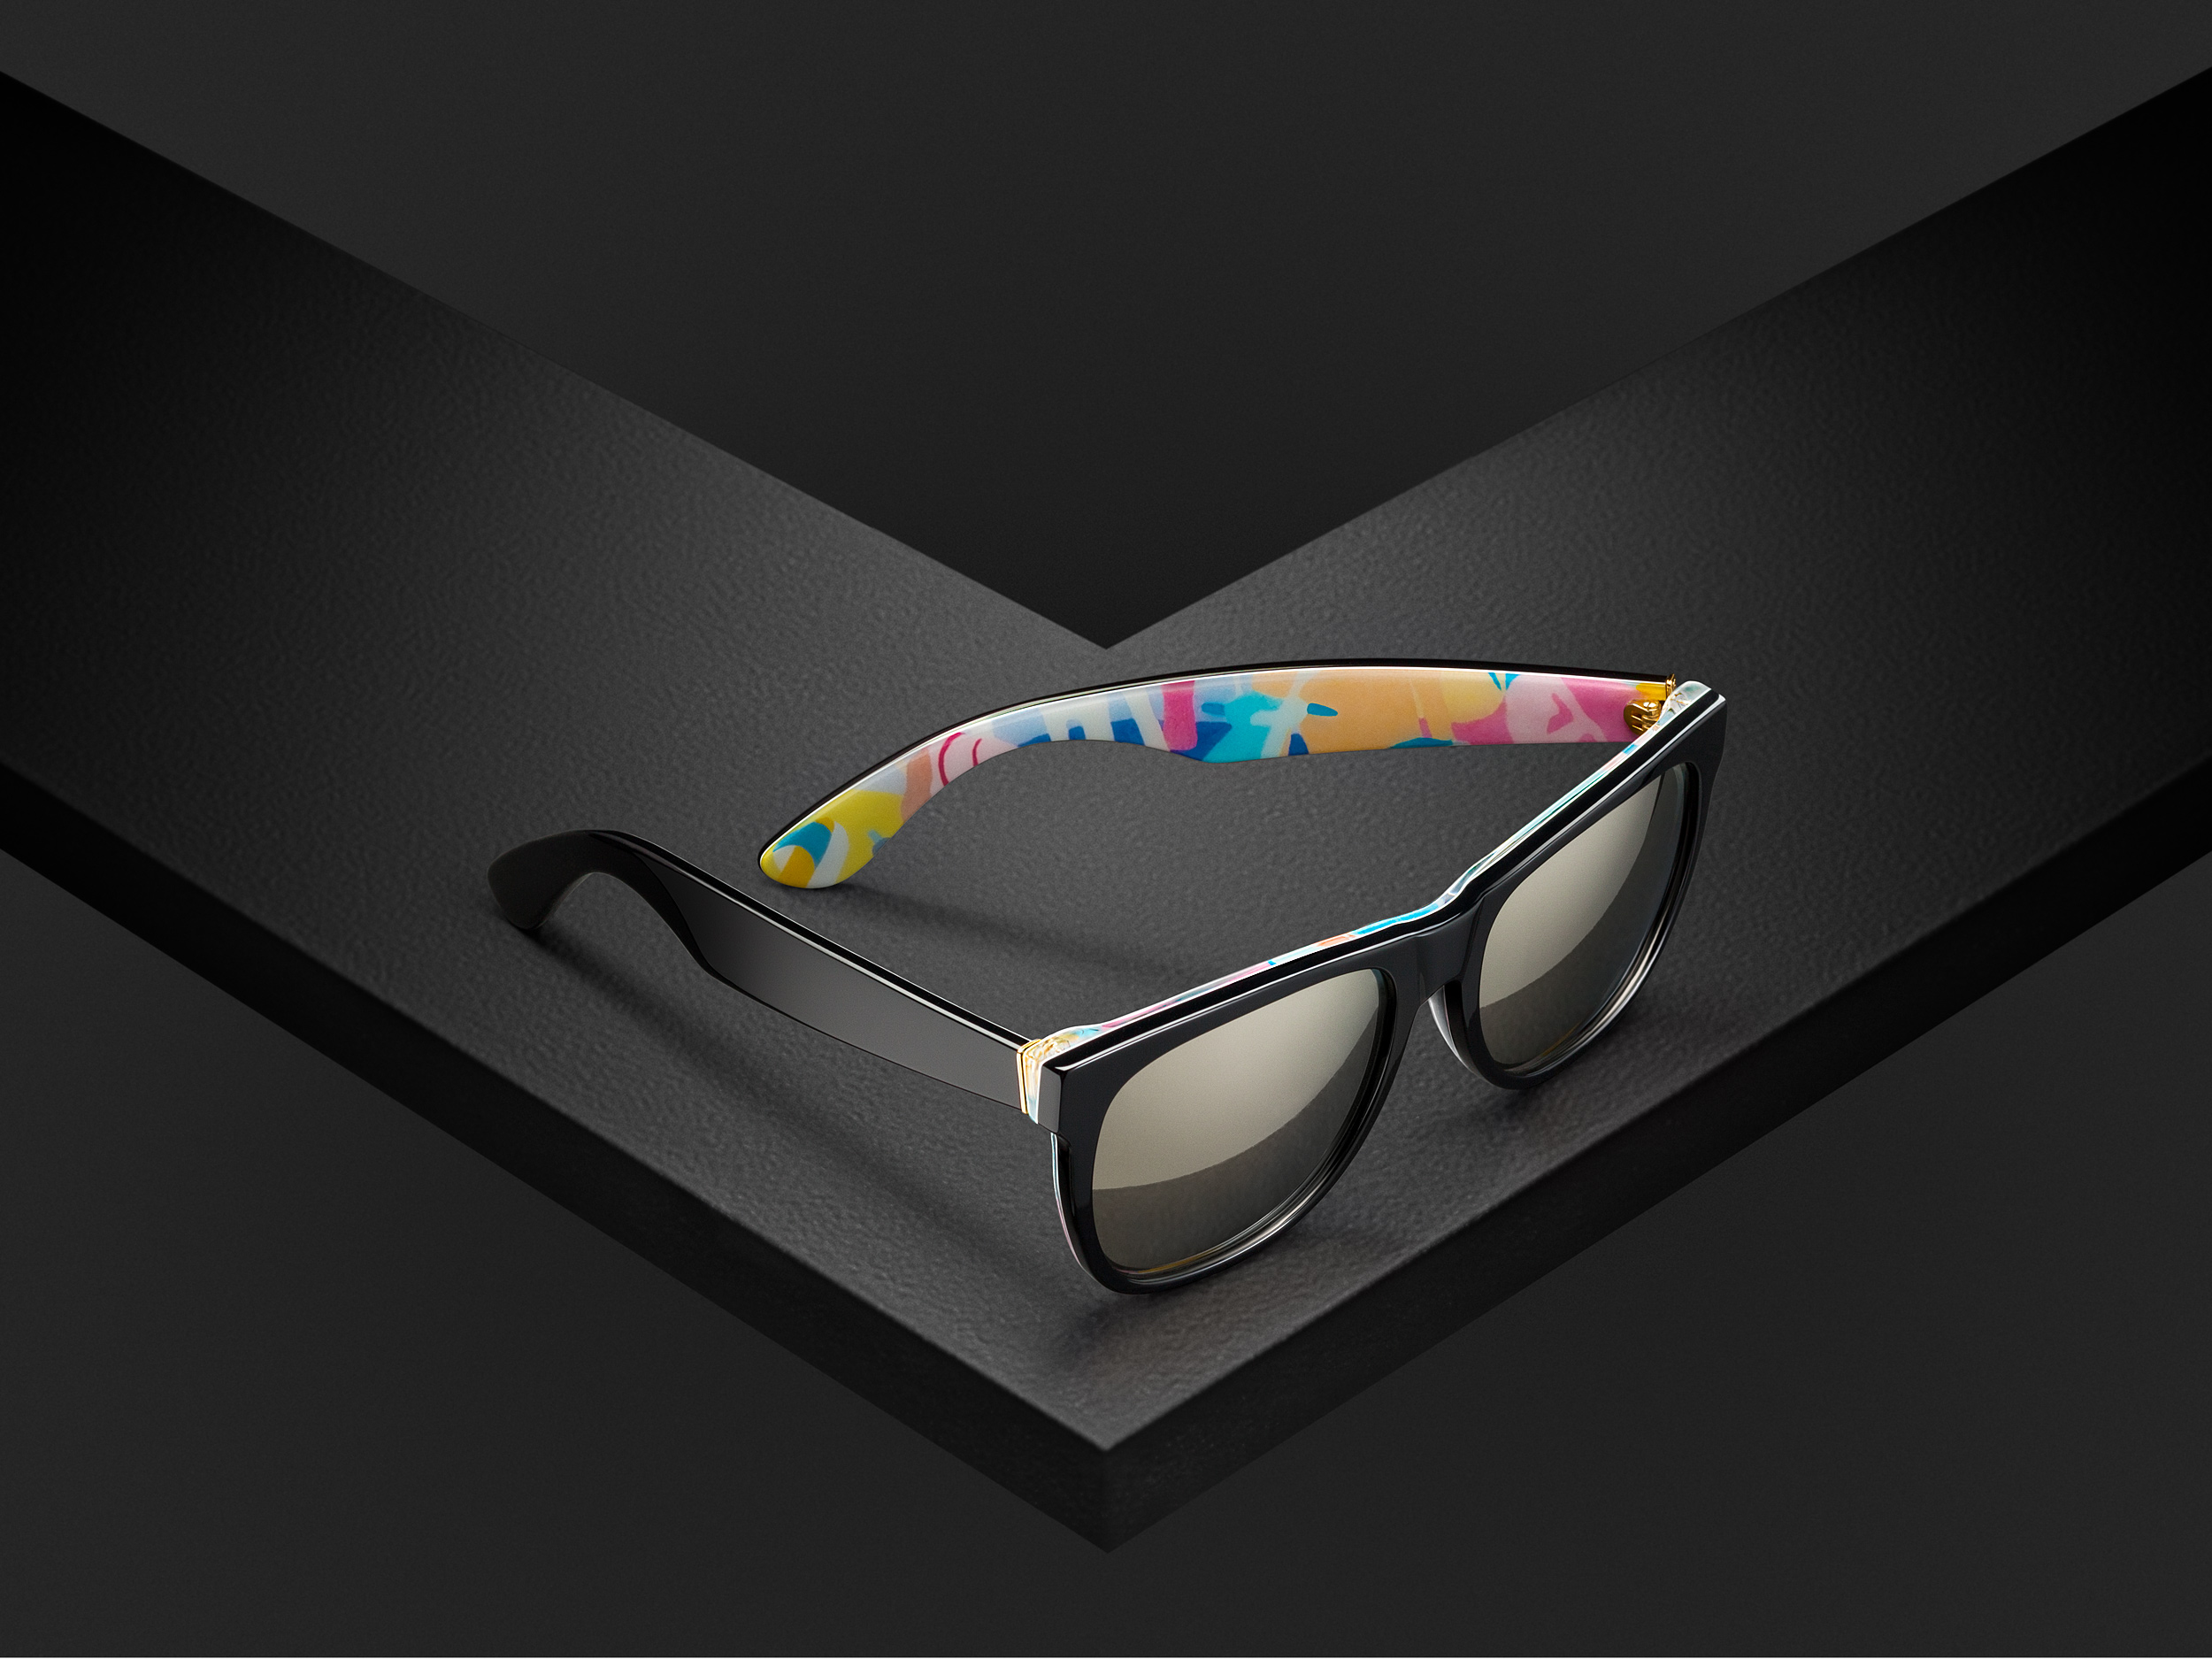 robvanderplank-apparel-sunglasses-pfv1.jpg